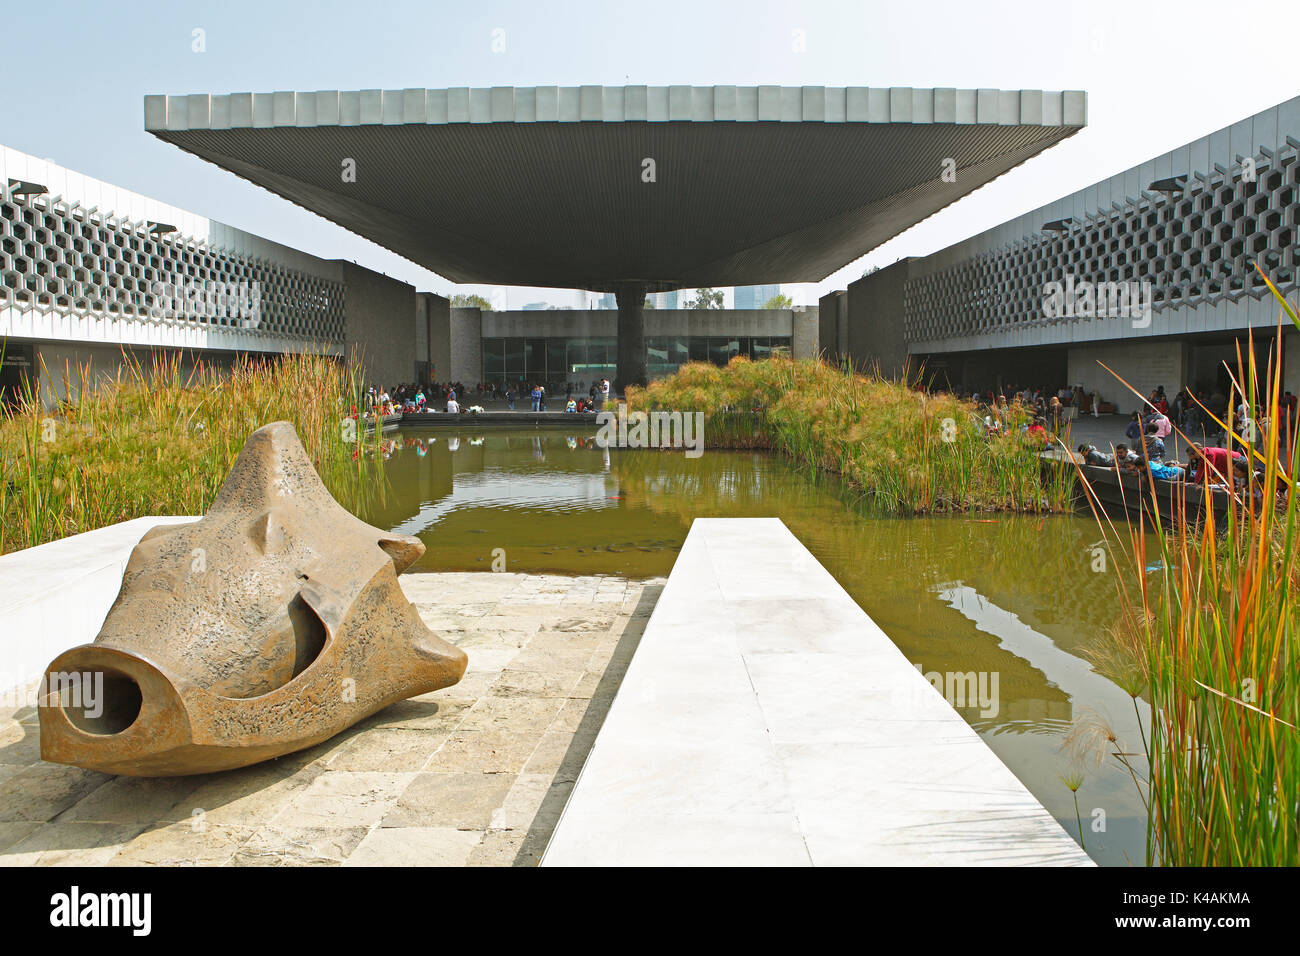 Anthropological museum, Mexico City, federal state of Mexico, Mexico - Stock Image